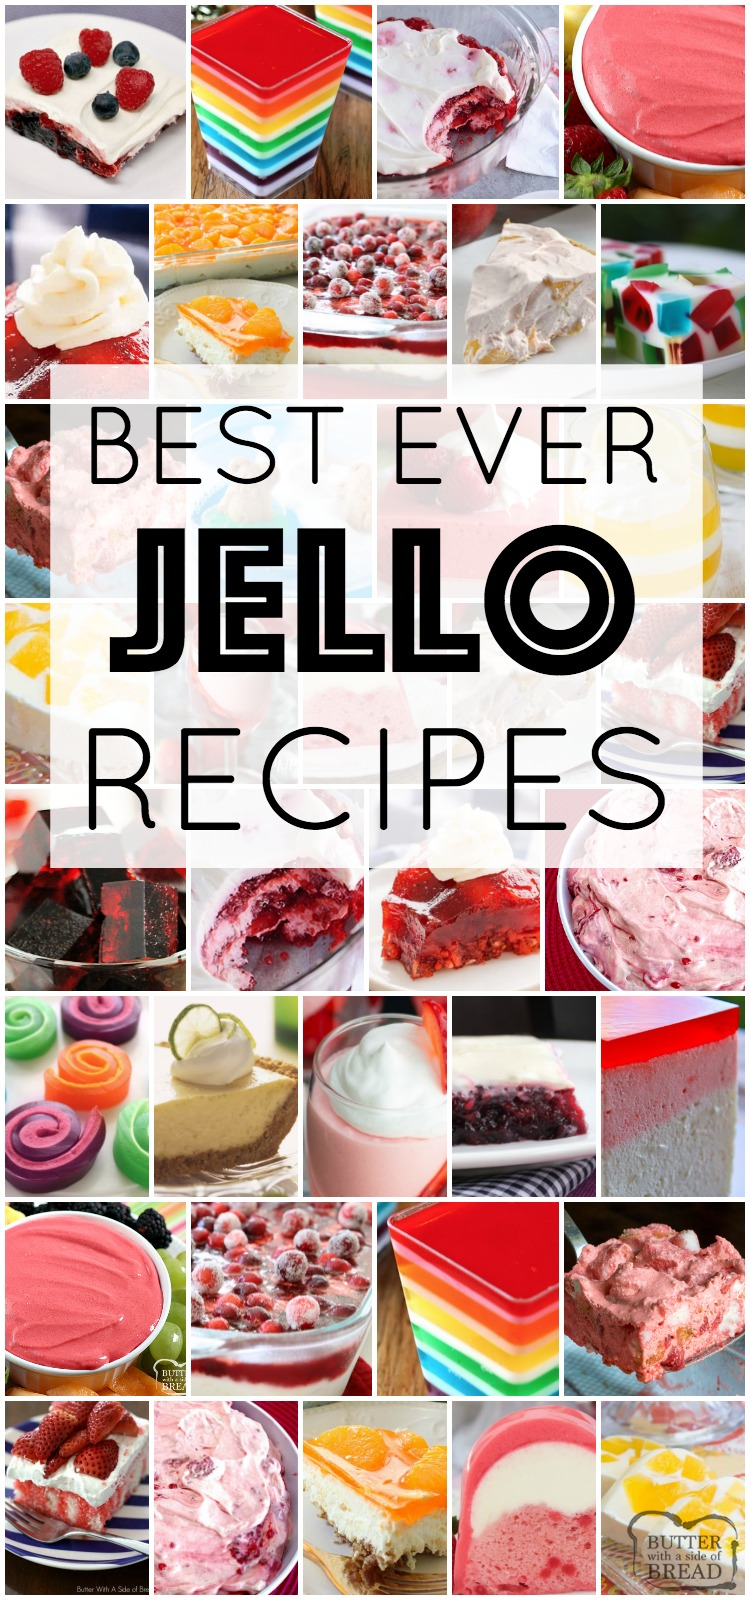 The best Jello recipes ever, all gathered in one place! Jello recipes for holidays, parties, dessert and more. We cover jello salad recipes, jello cakes and cookies and layered jello desserts. Fun, tasty & simple jello recipes for any occasion. #jello #jellosalad #dessert #jellorecipes #recipe #salad #fruit from BUTTER WITH A SIDE OF BREAD